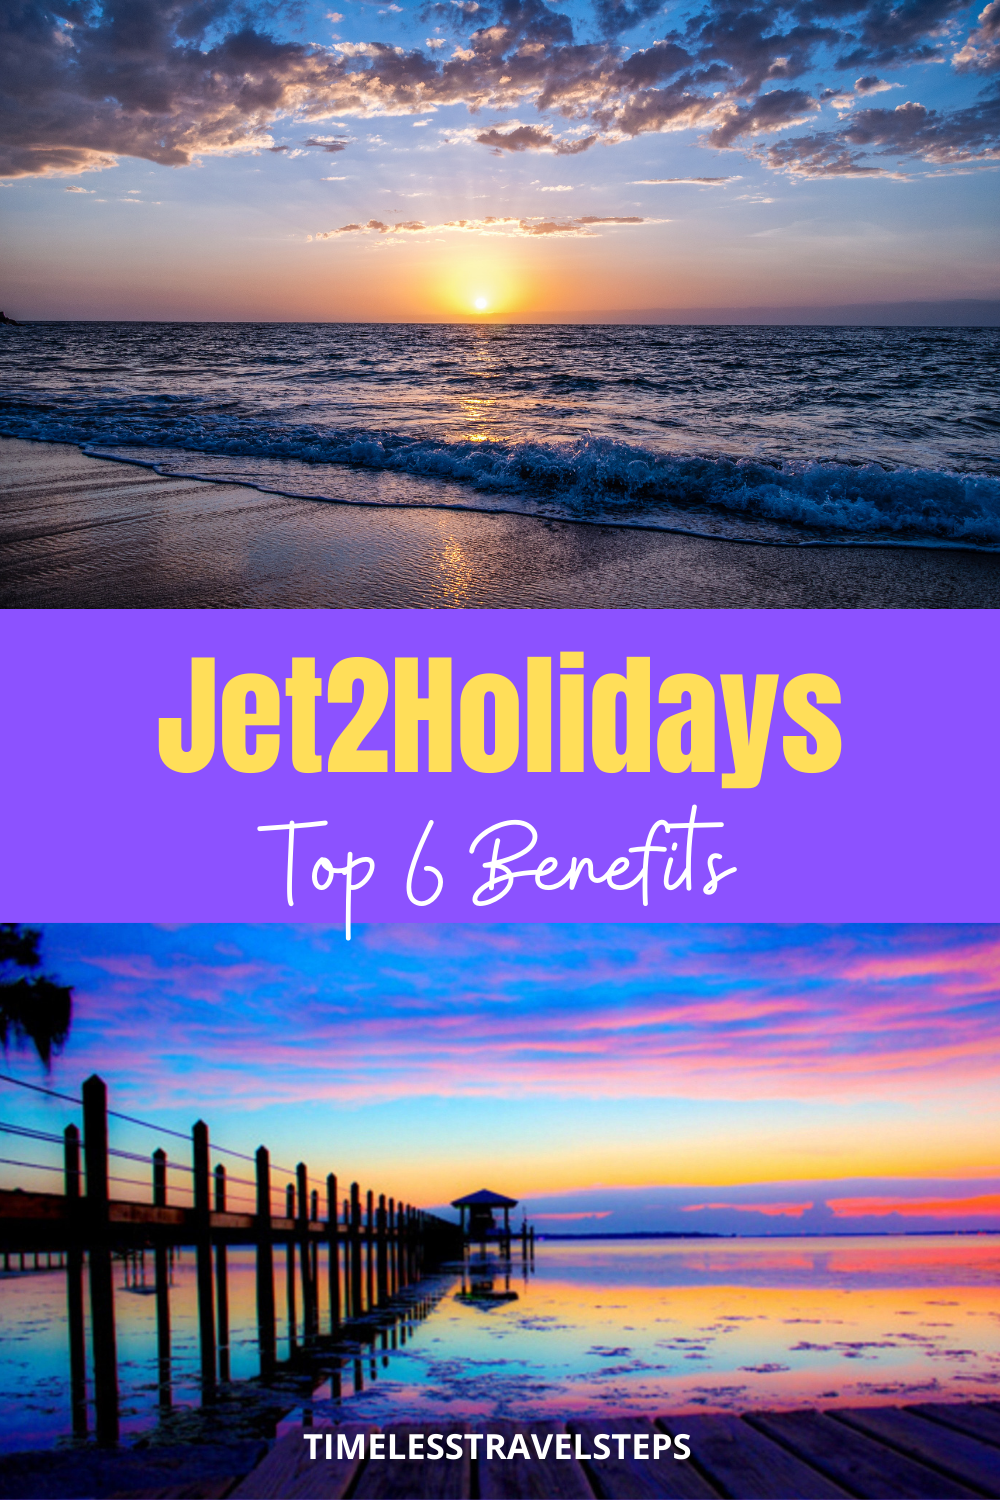 Needing a holiday in the sun? Be it for winter sun or summer getaway, these 6 benefits of Jet2Holidays is every reason for you to book one. via @GGeorgina_mytimelessfootsteps/